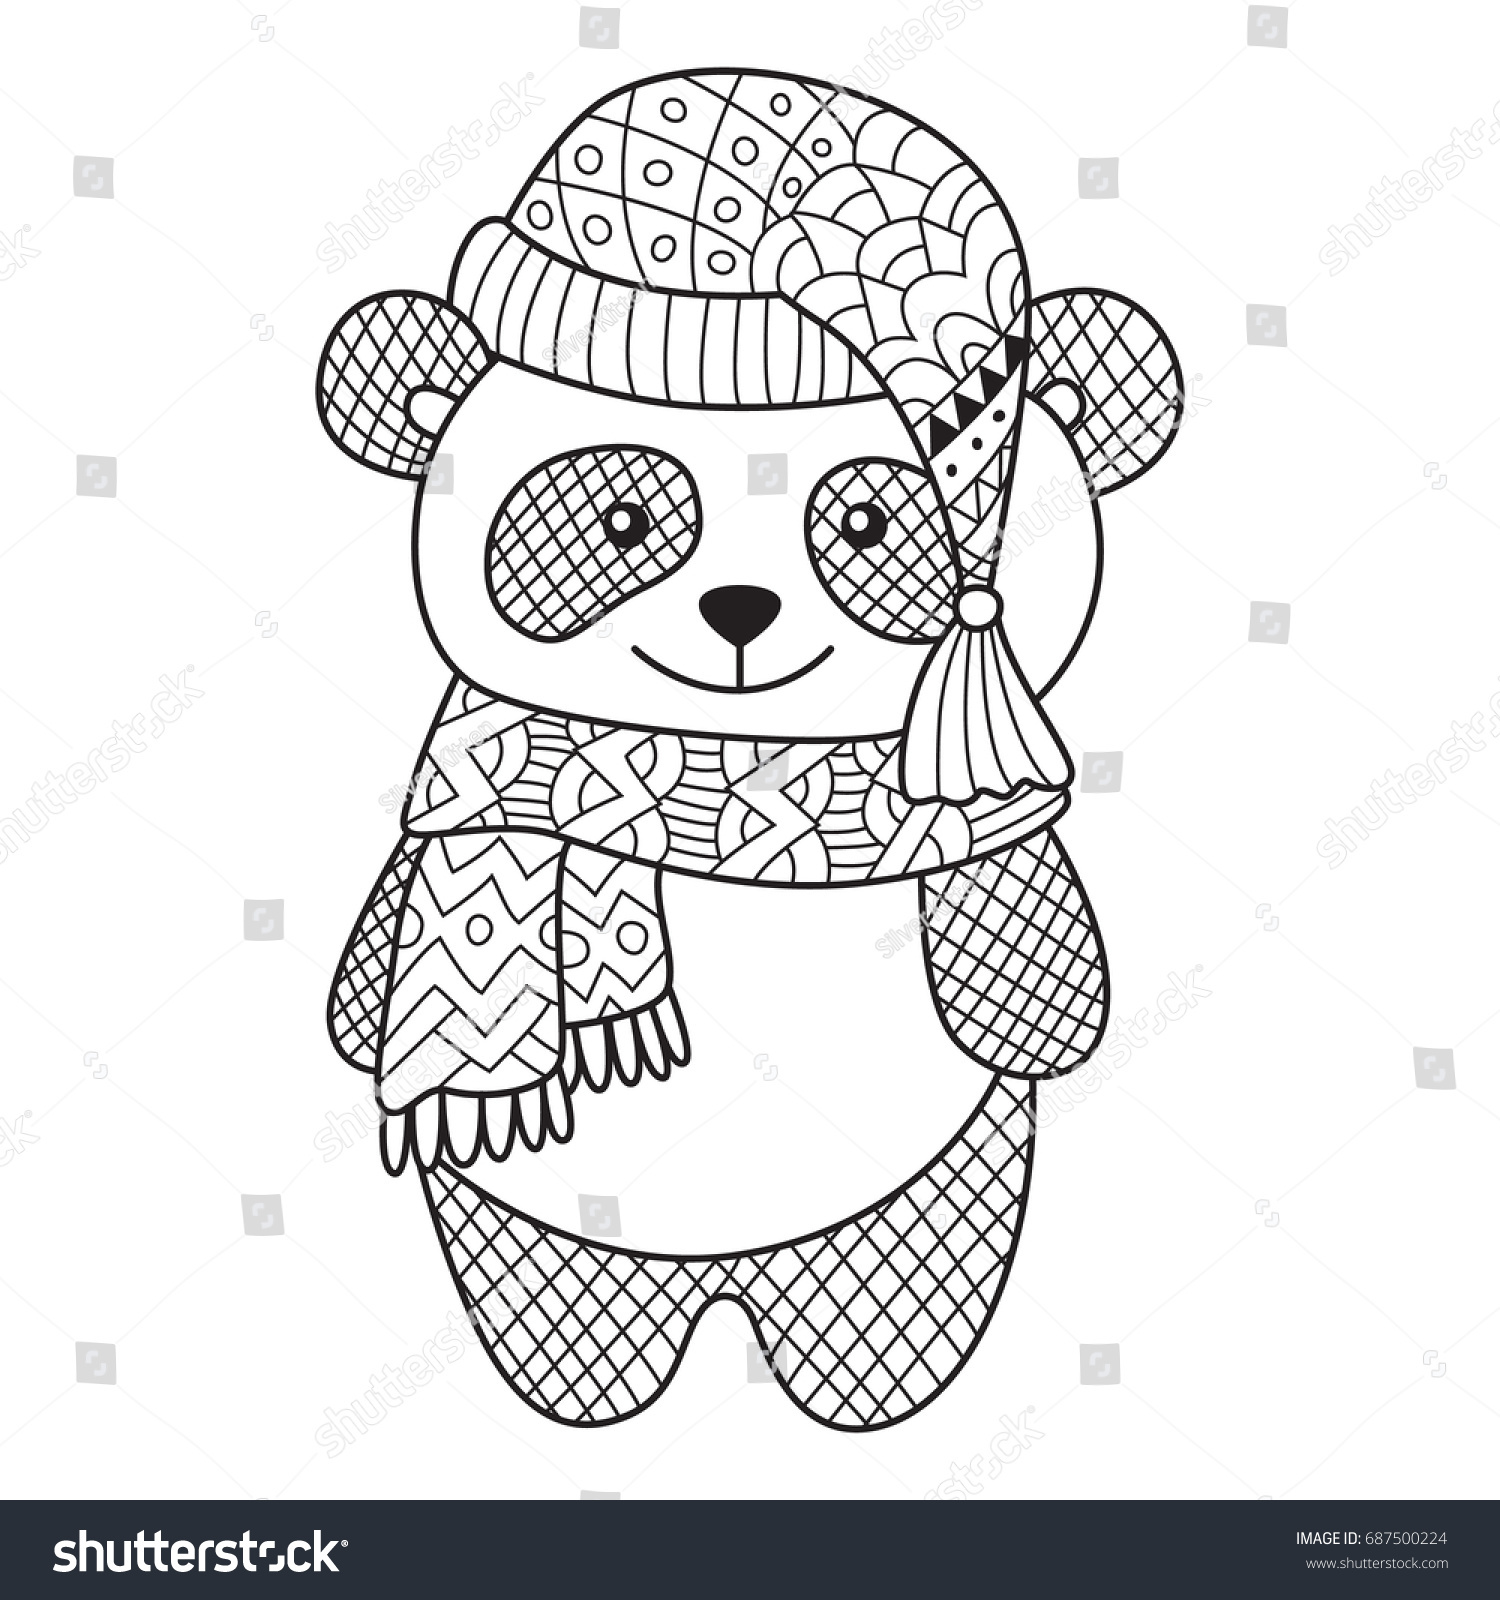 Doodle Coloring Book Page Funny Panda Stock Vector 687500224 ...